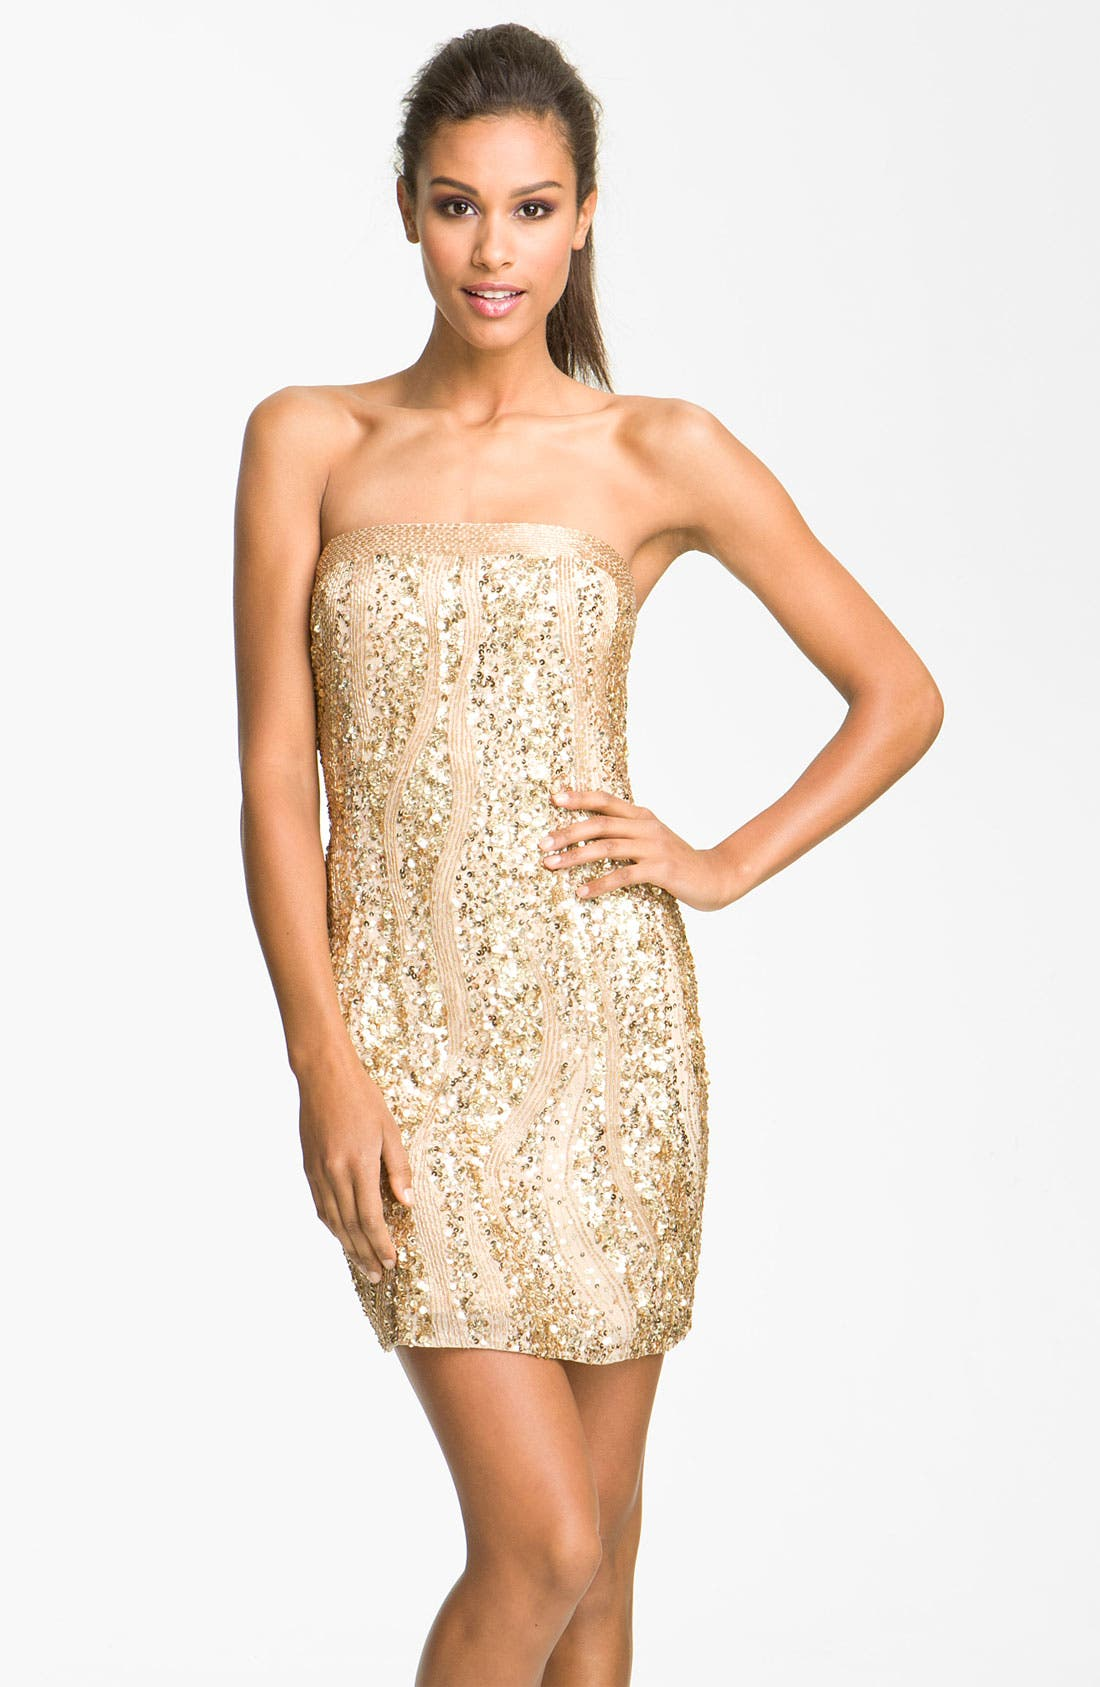 Alternate Image 1 Selected - Adrianna Papell Sequin Strapless Sheath Dress (Petite)